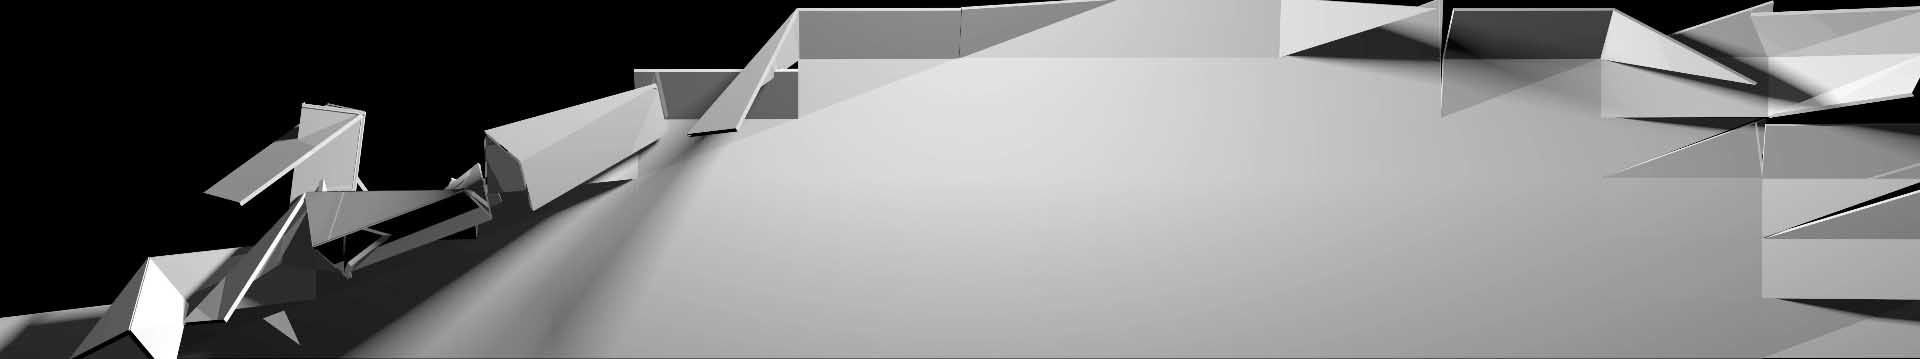 Ultrawide_Background_VIdeo_Mapping_Loop_Packs_Layer_1